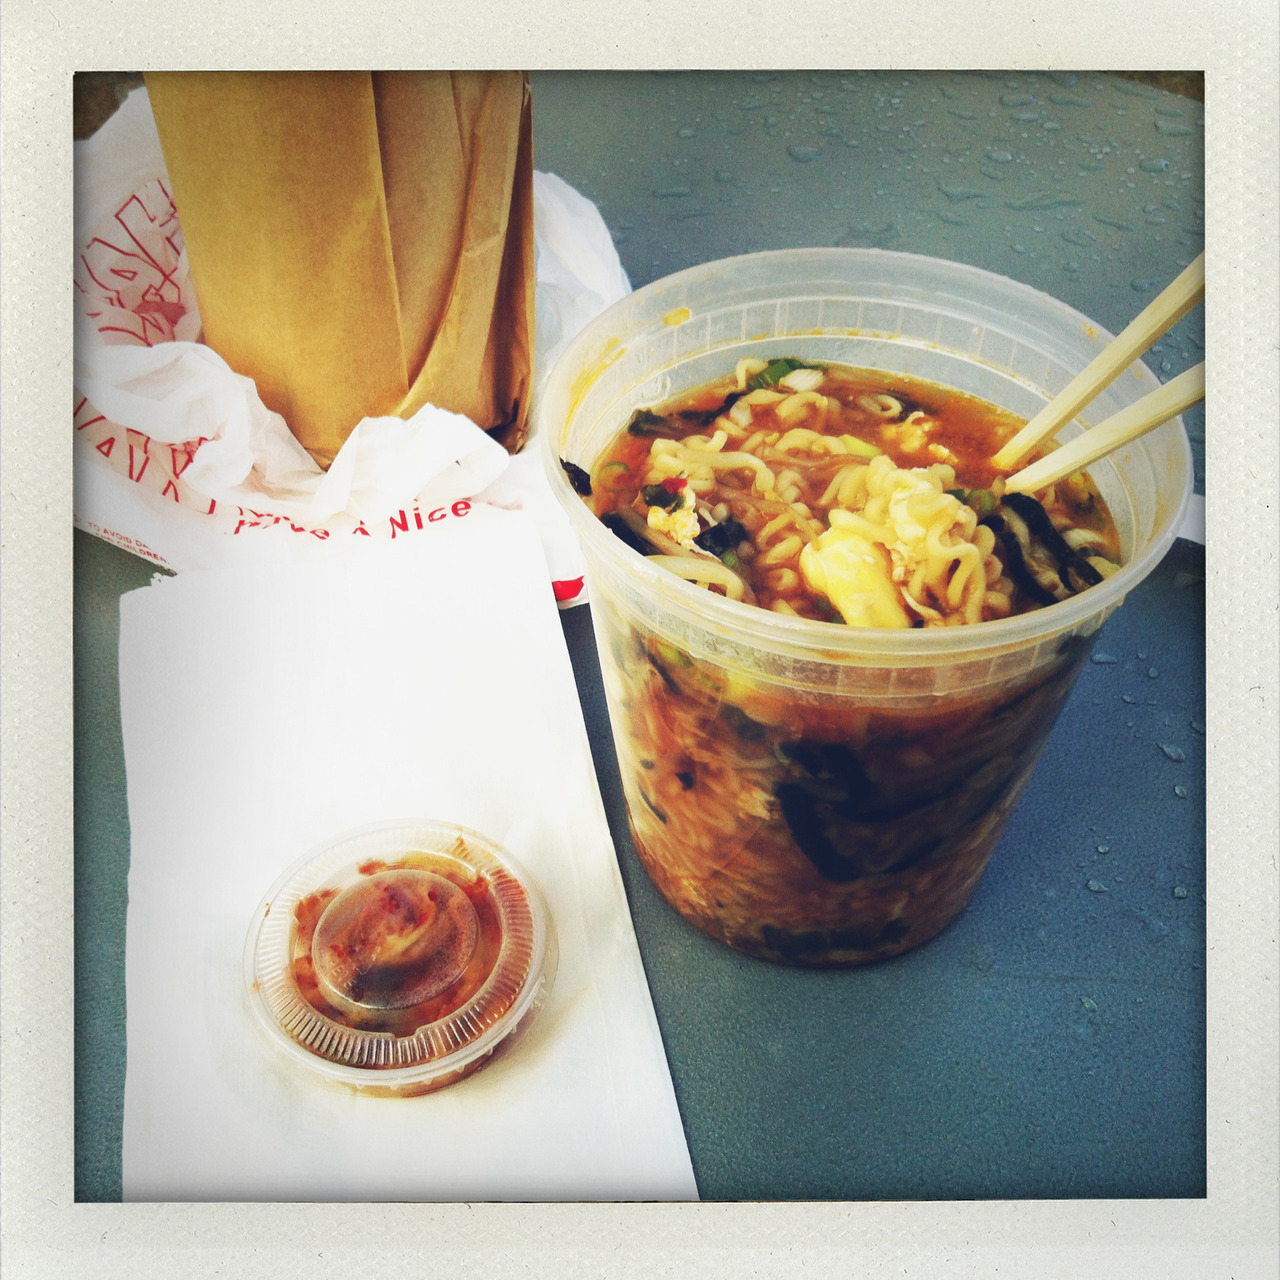 ramyun from no1 bento. the best meal $5 can get you on a cold winter's day.